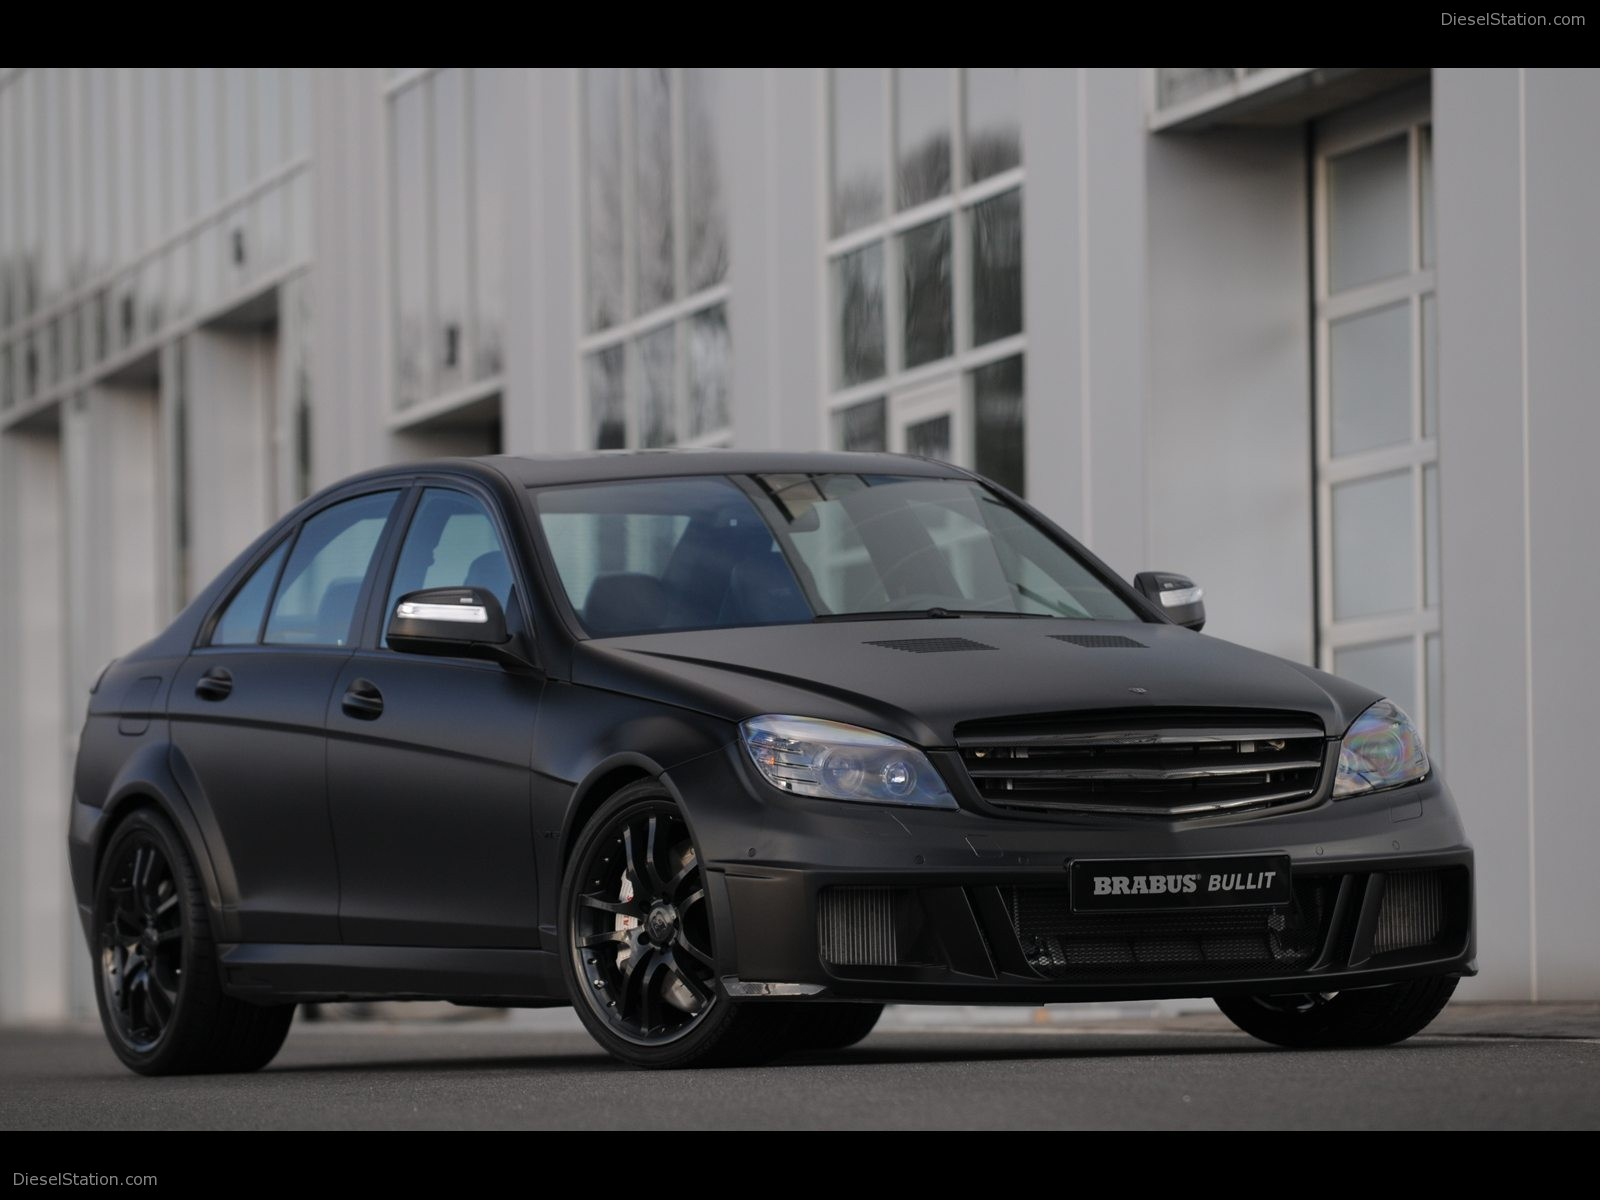 2019 Brabus Bullit Black Arrow photo - 1